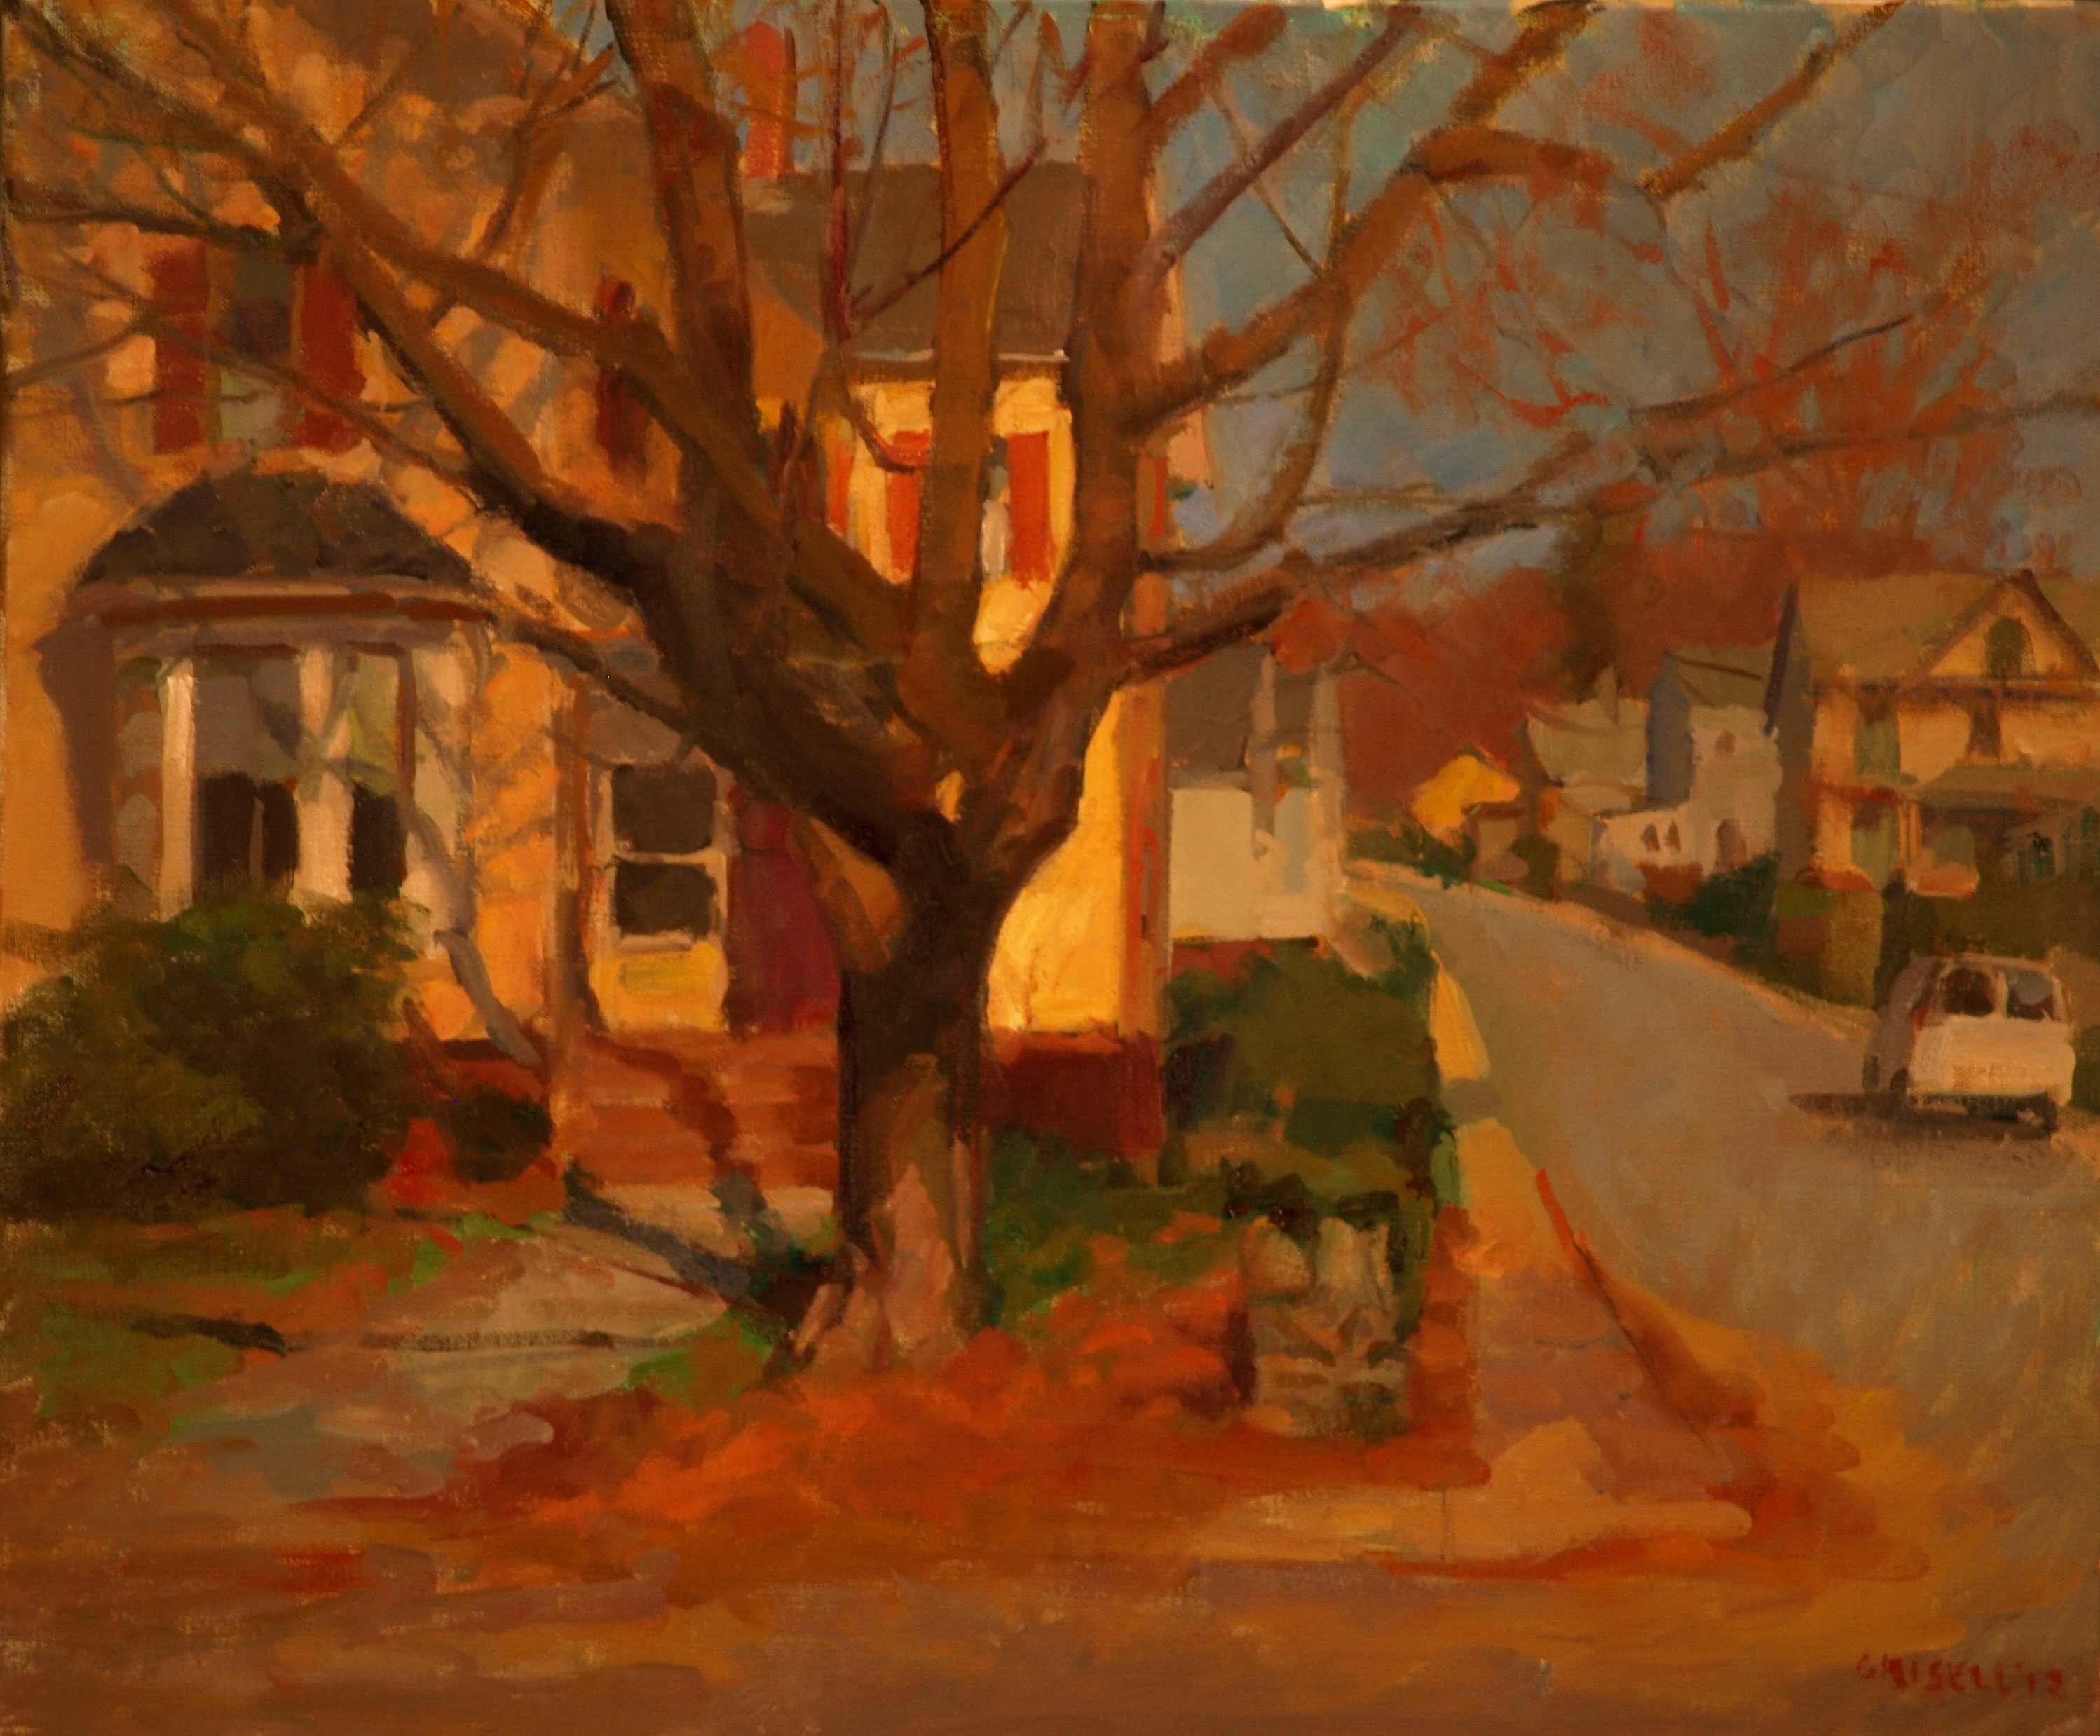 The Corner House, Oil on Canvas, 20 x 24 Inches, by Susan Grisell, $650